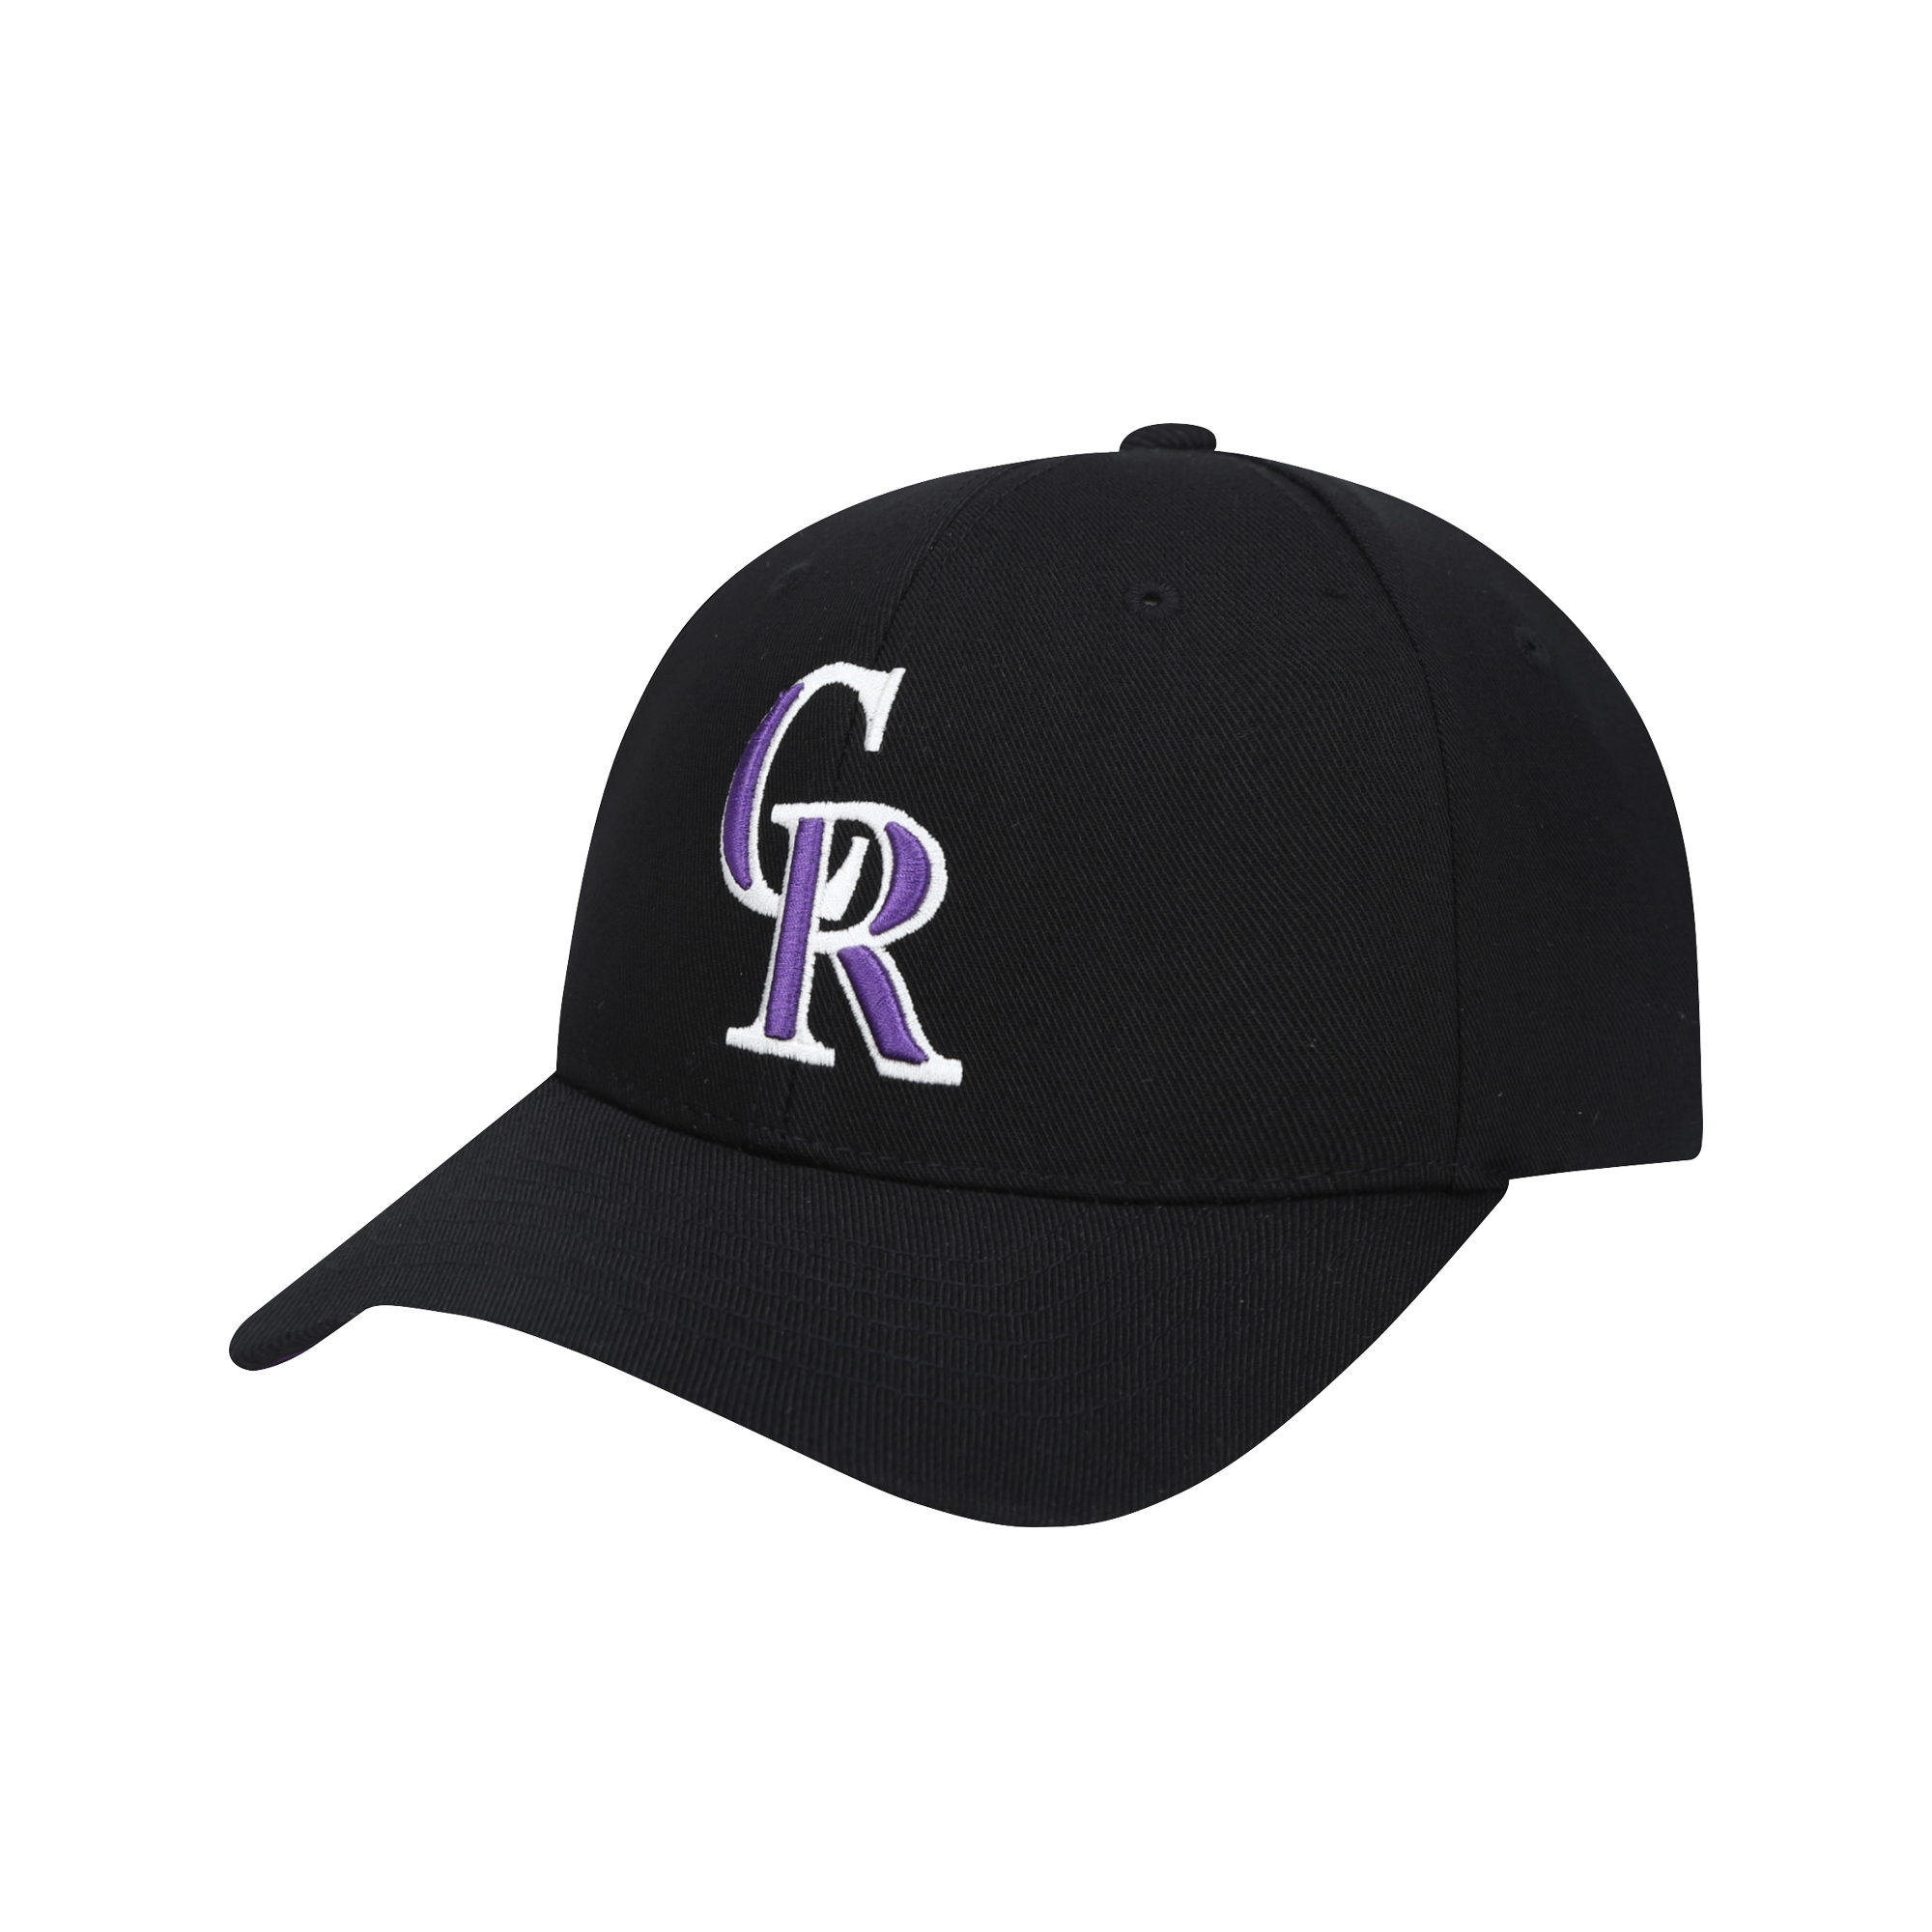 COLORADO ROCKIES BATTER CURVED CAP